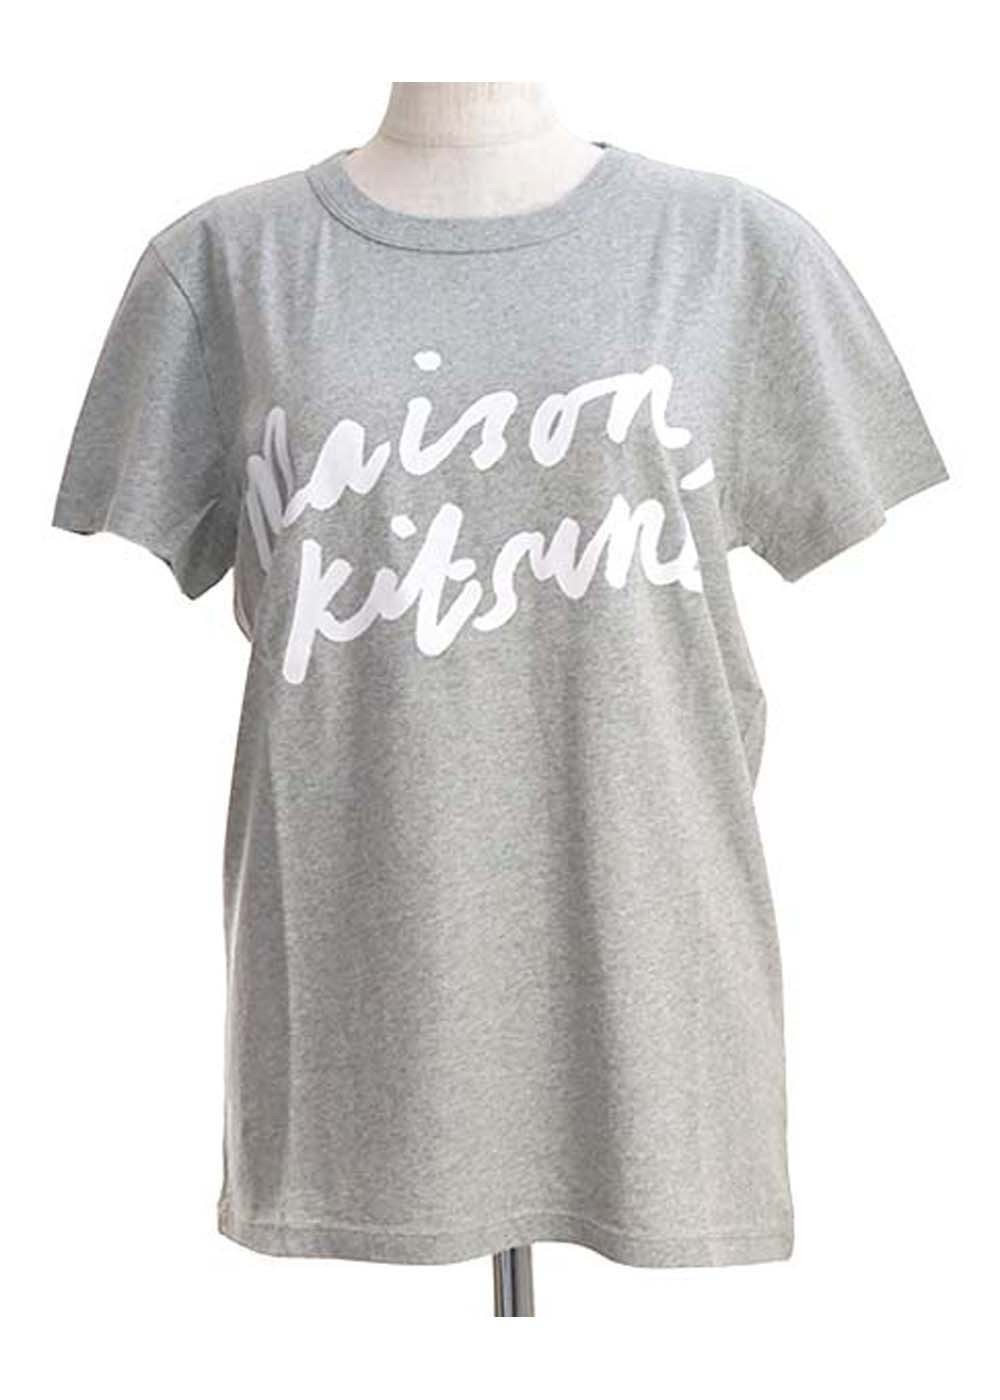 【最大35%OFF】TEE-SHIRT HANDWRITING|GREY MELANGE|Tシャツ|MAISON KITSUNE